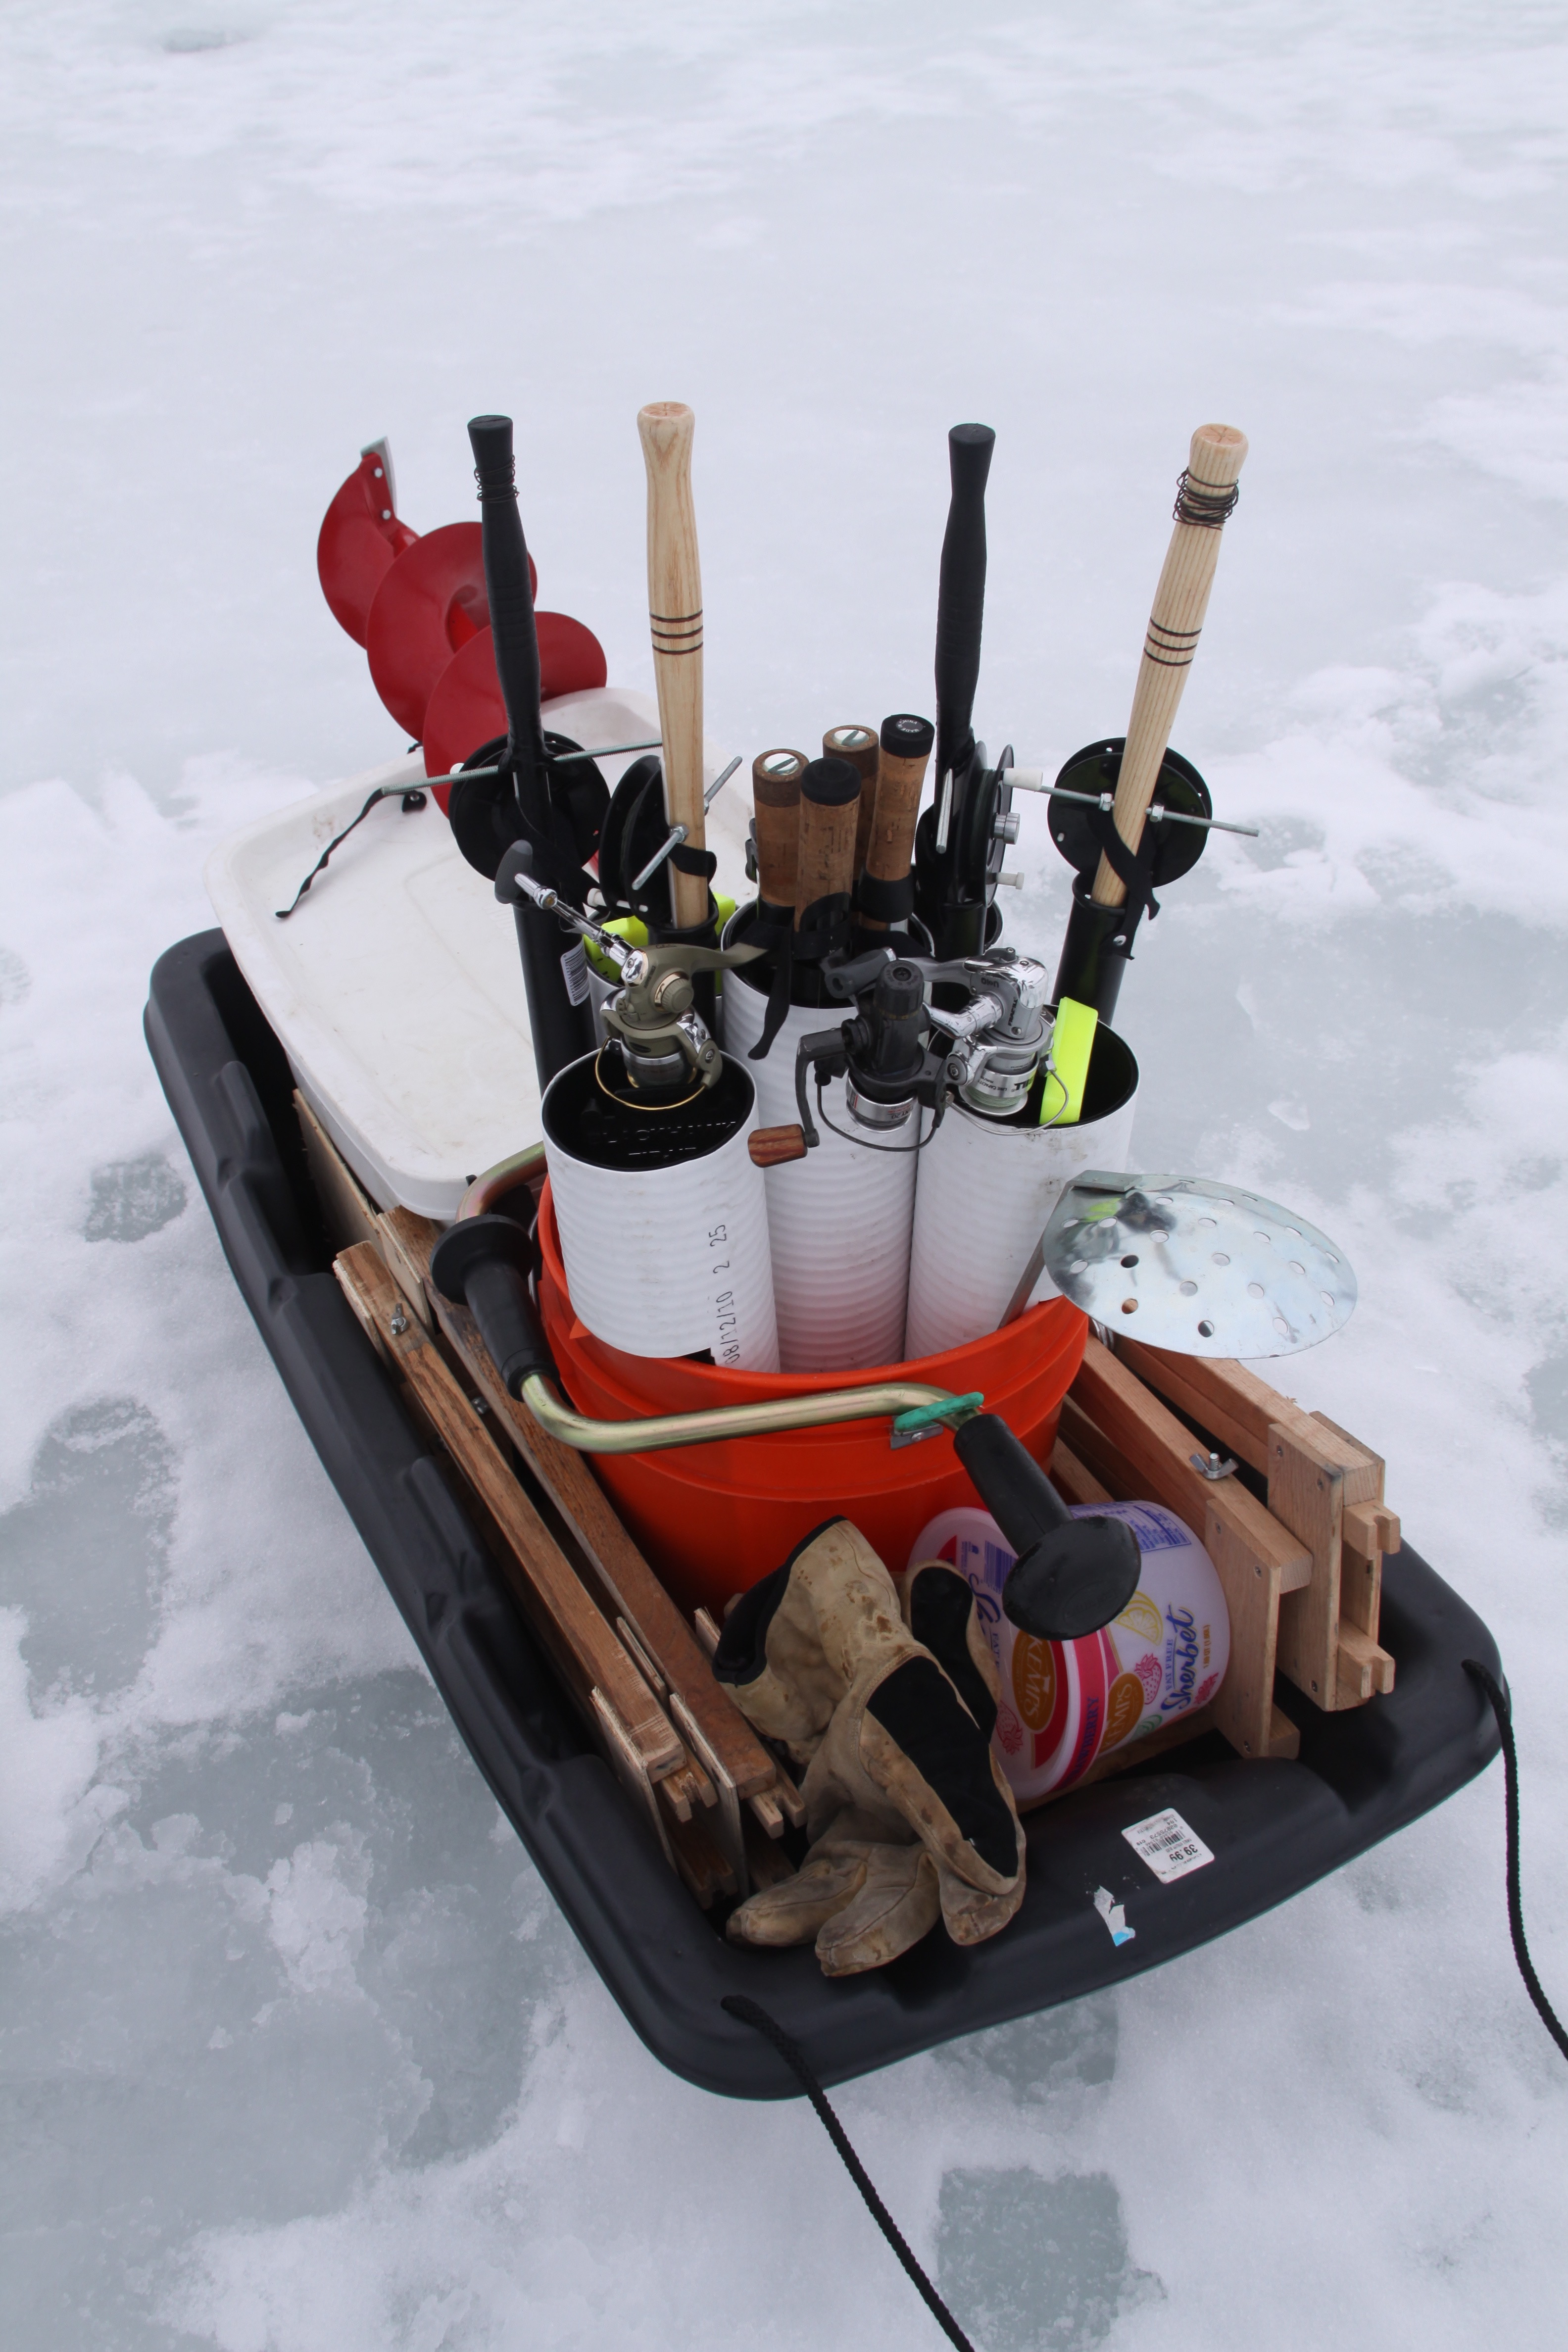 Ice fishing idaho s coolest angling opportunity for Ice fishing sleds